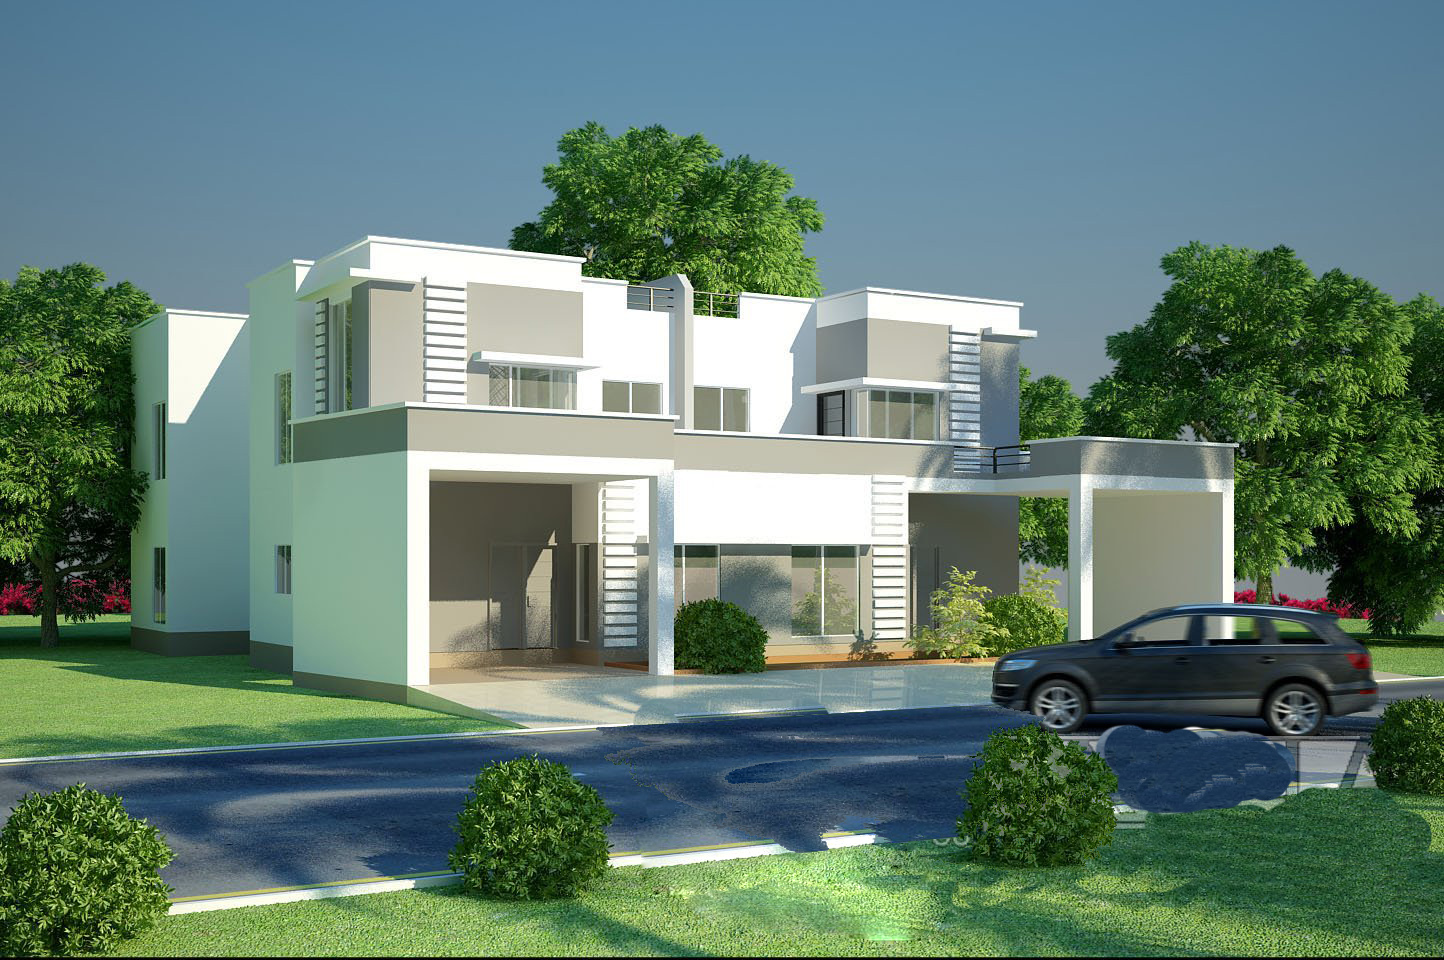 ... designs latest.: Modern homes beautiful latest exterior homes designs